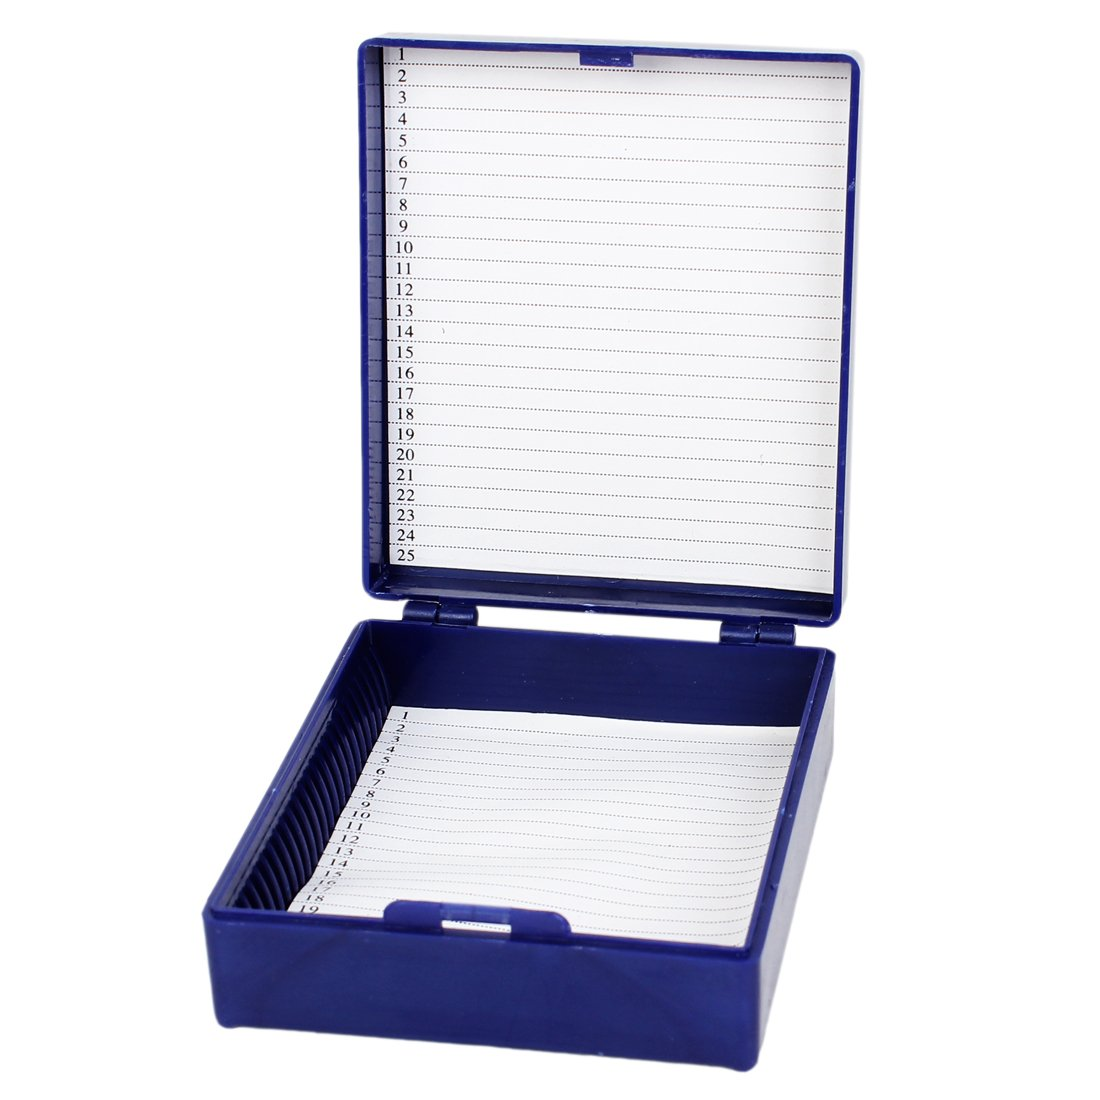 sourcingmap® Royal Blue Rectangle Shape Hold 25 Microslide Slide Microscope Box a14030600ux0102